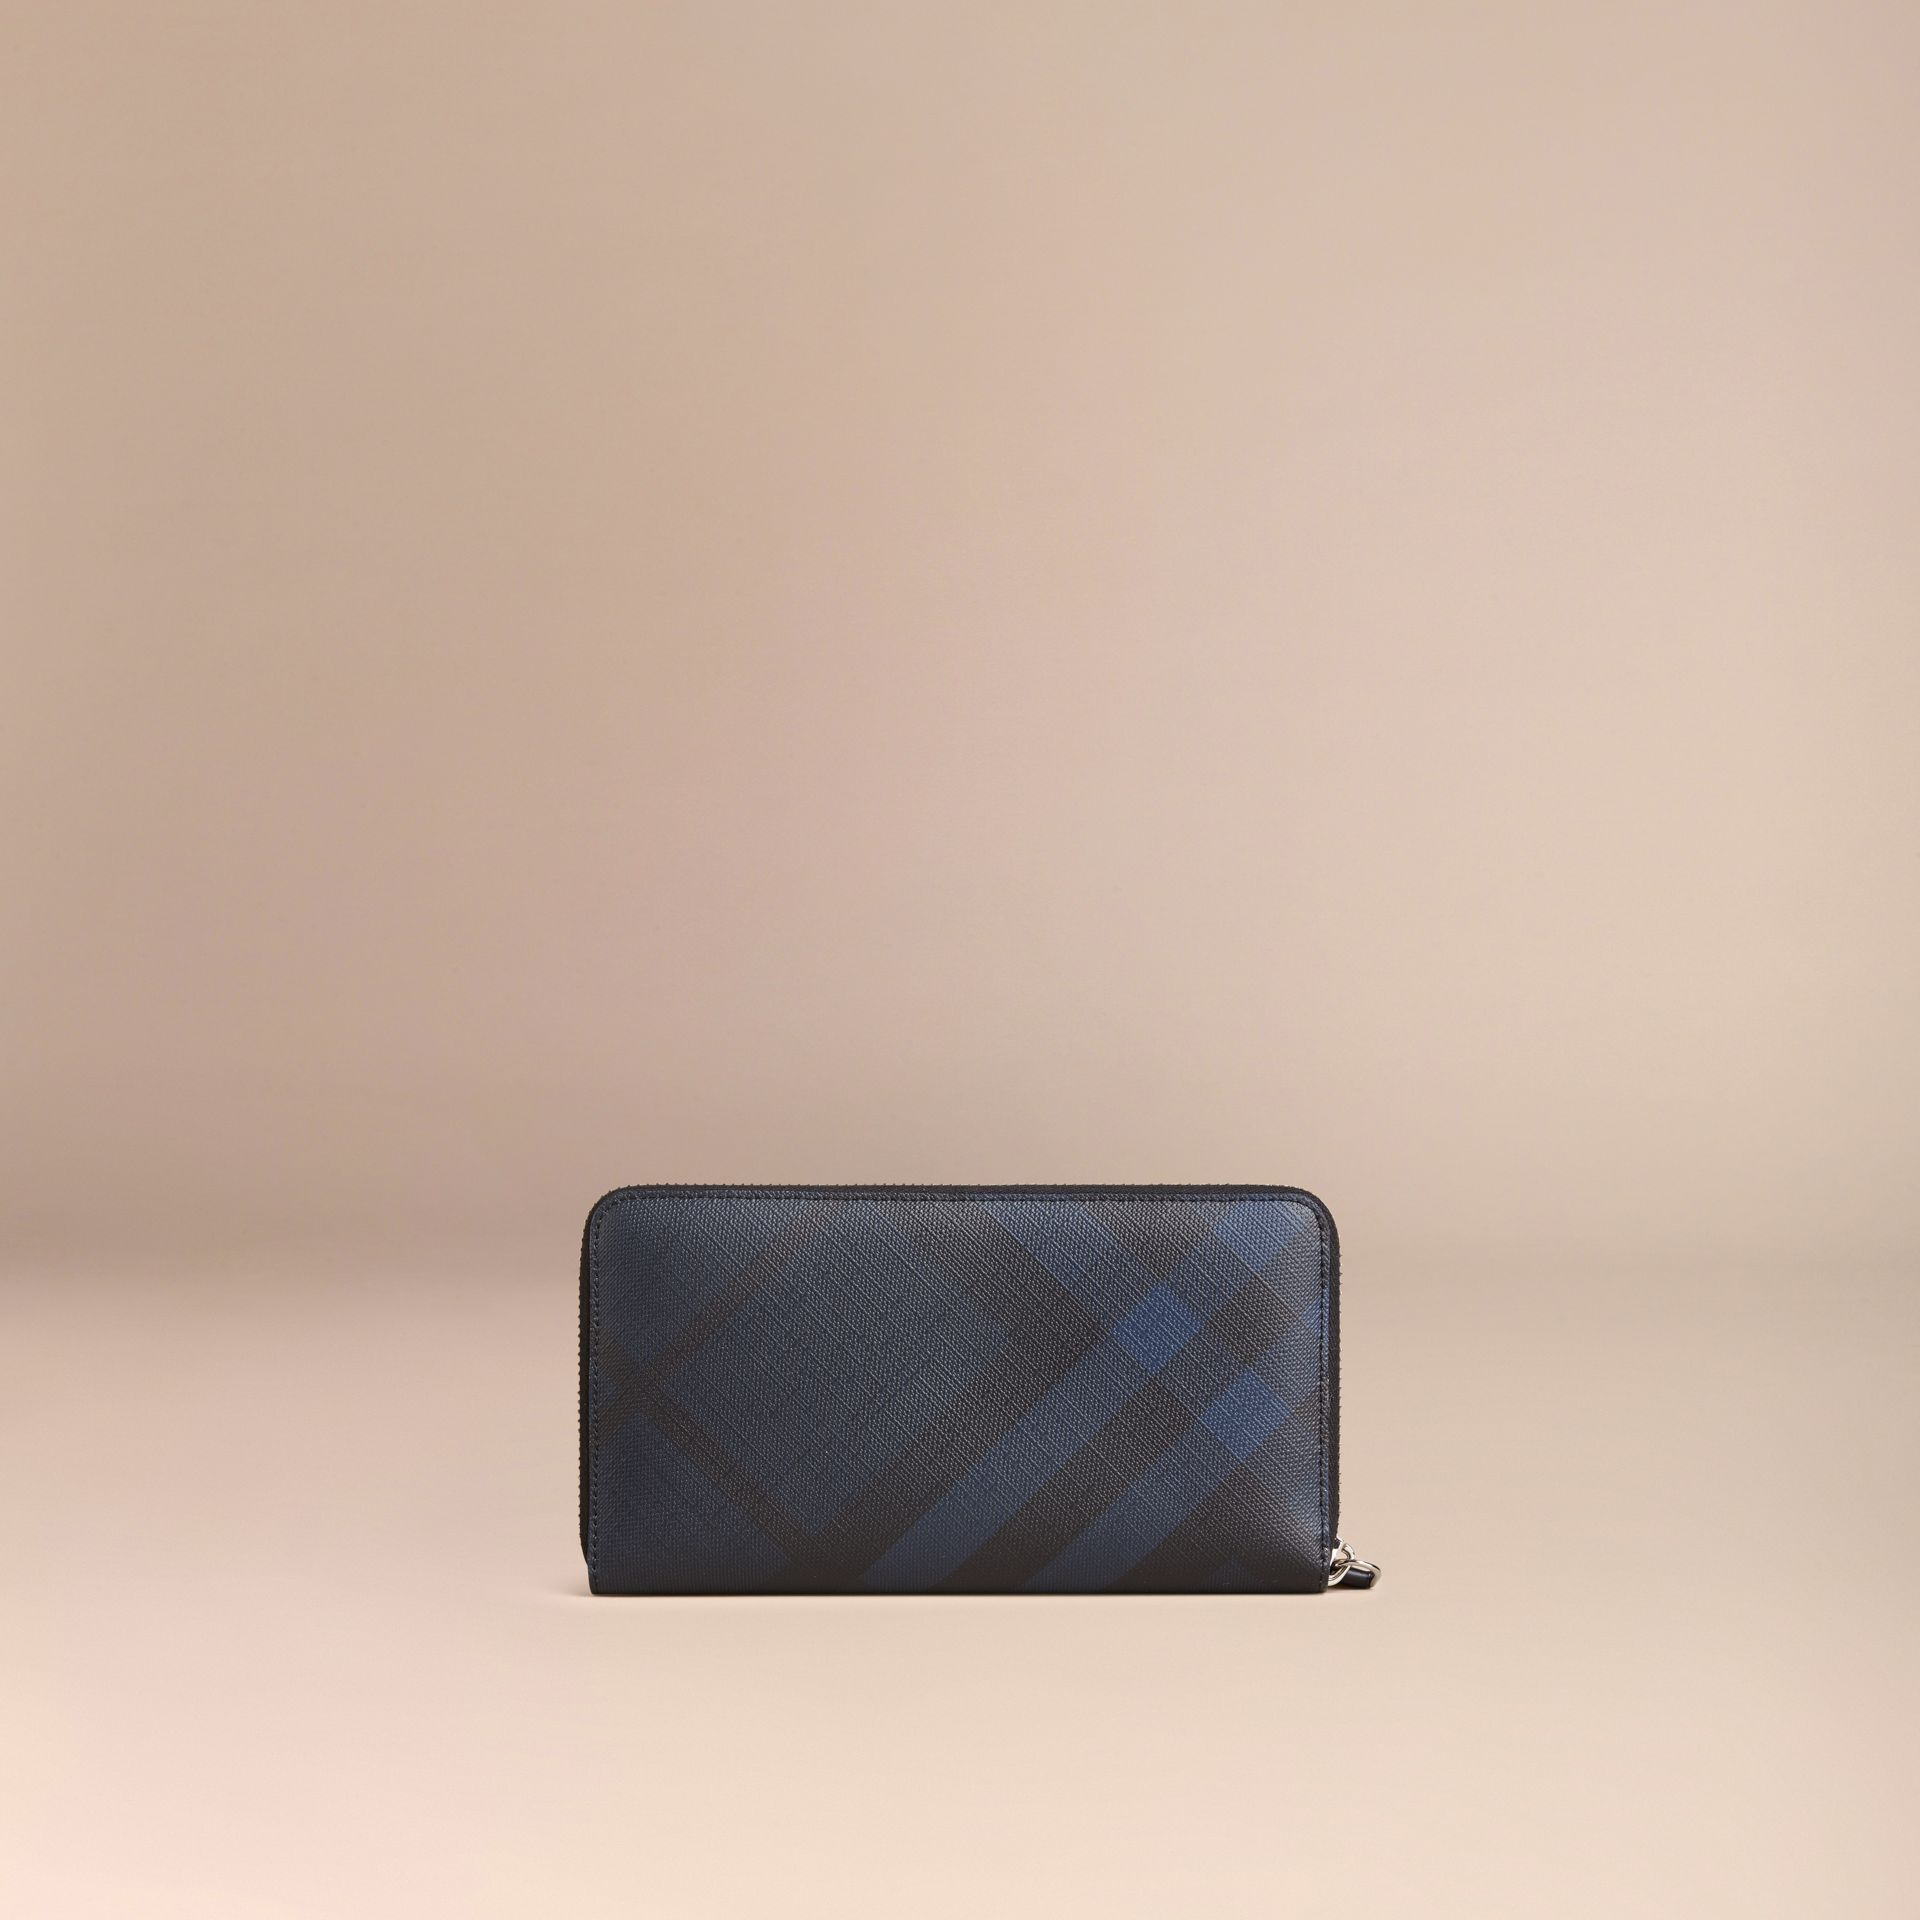 London Check Ziparound Wallet in Navy/black - Men | Burberry - gallery image 3